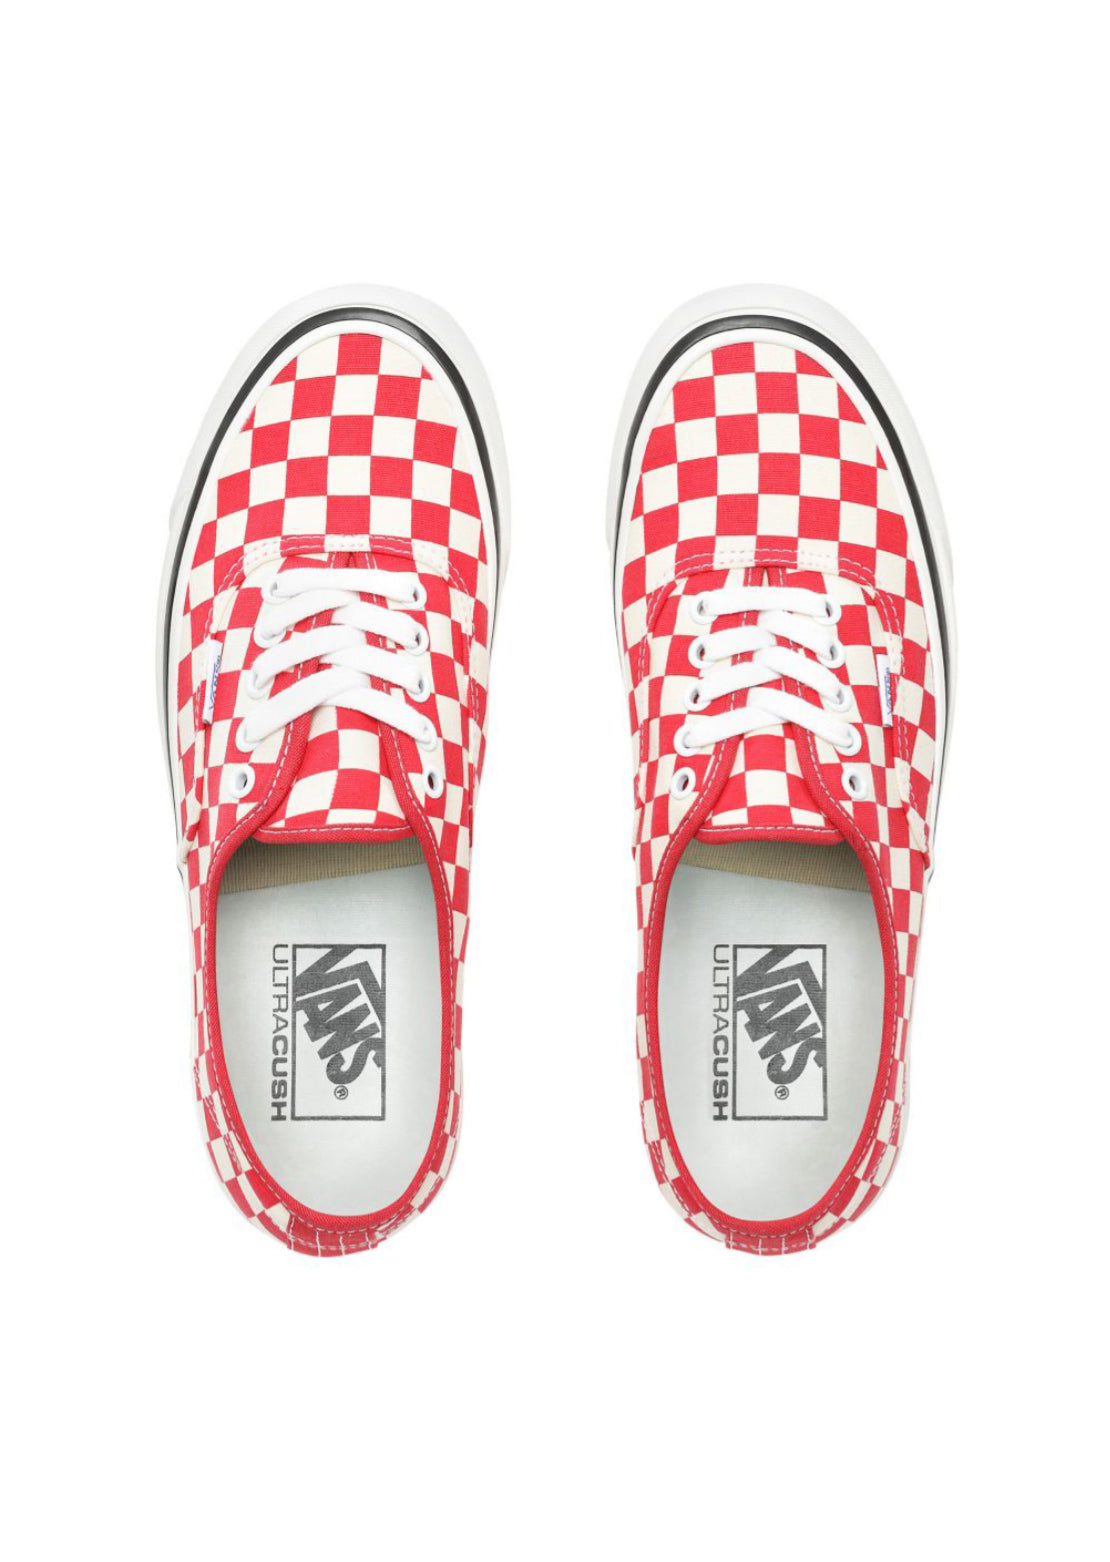 Vans Women's Anaheim Factory Authentic 44 DX Shoes OG Red/Check